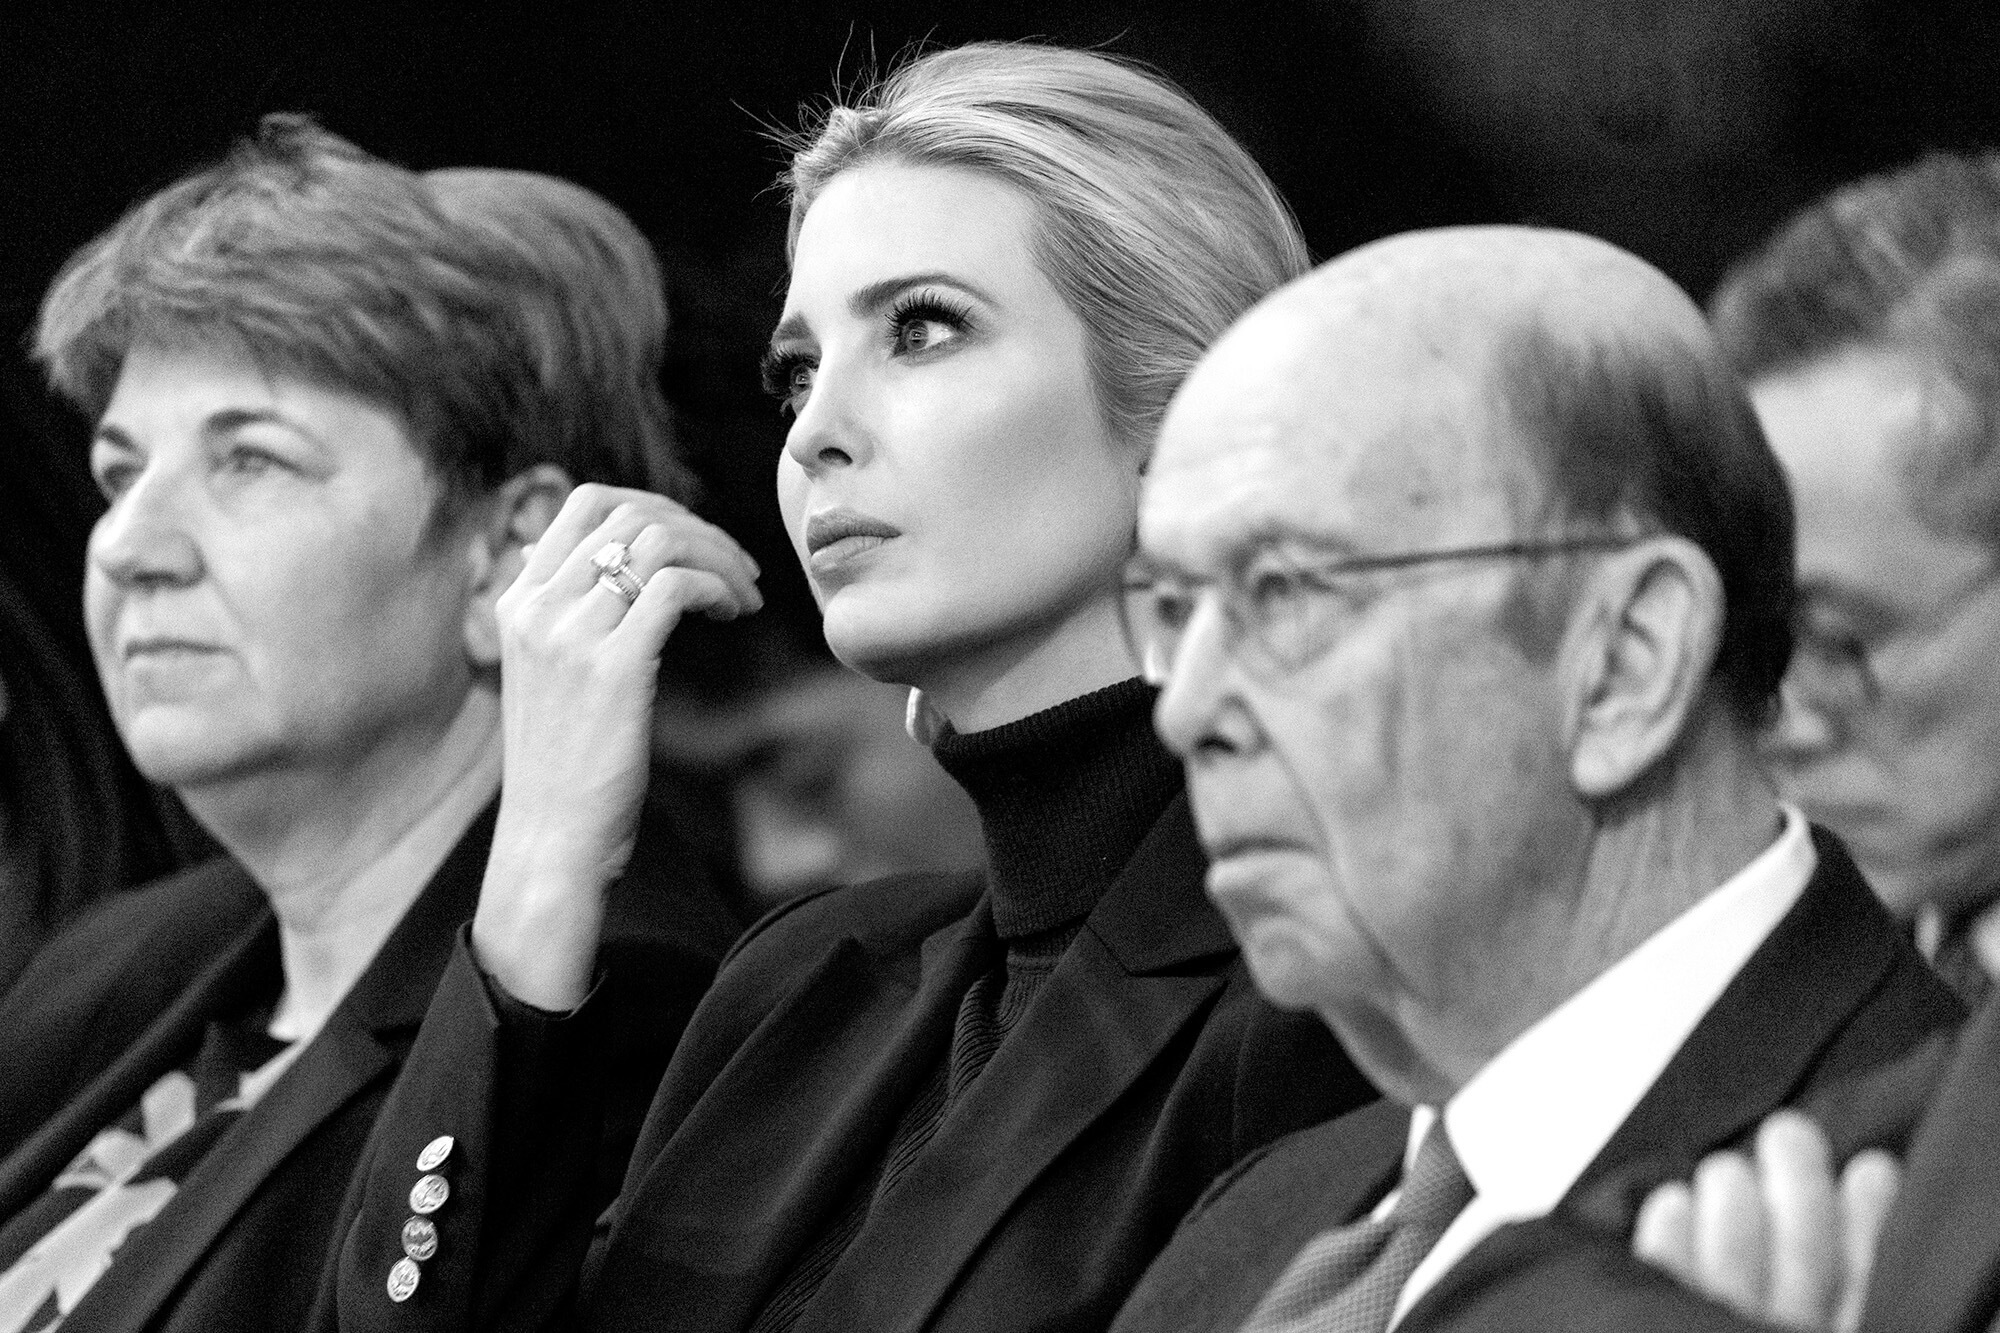 The fact that Ivanka Trump and Jared Kushner did not take government salaries while serving in the White House did not keep them from enriching themselves while holding public office.